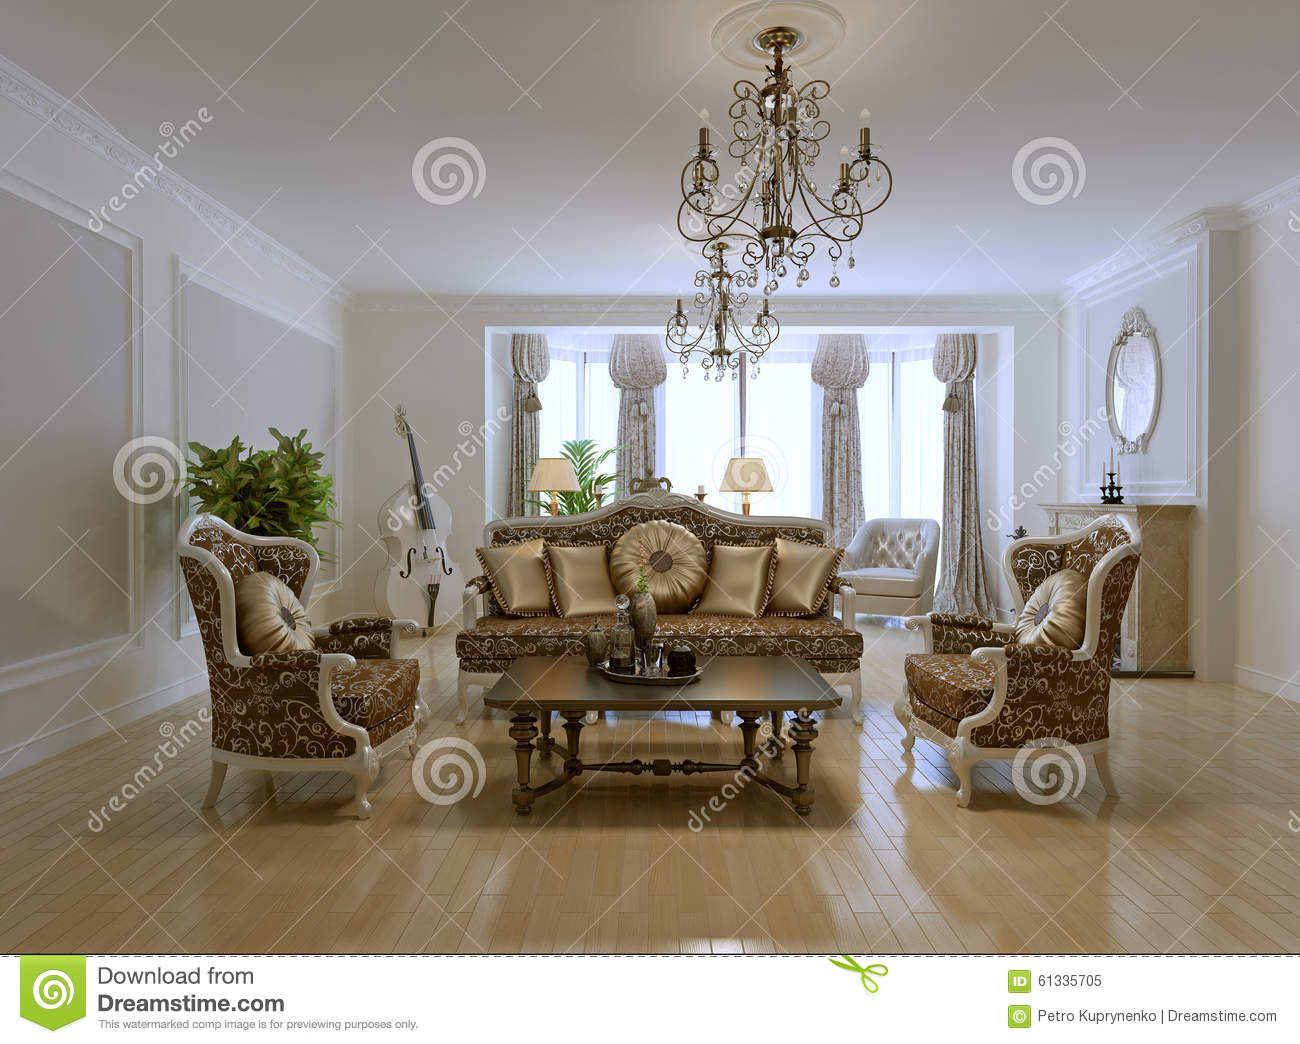 Conception de salon riche illustration stock image 61335705 for Conception salon 3d